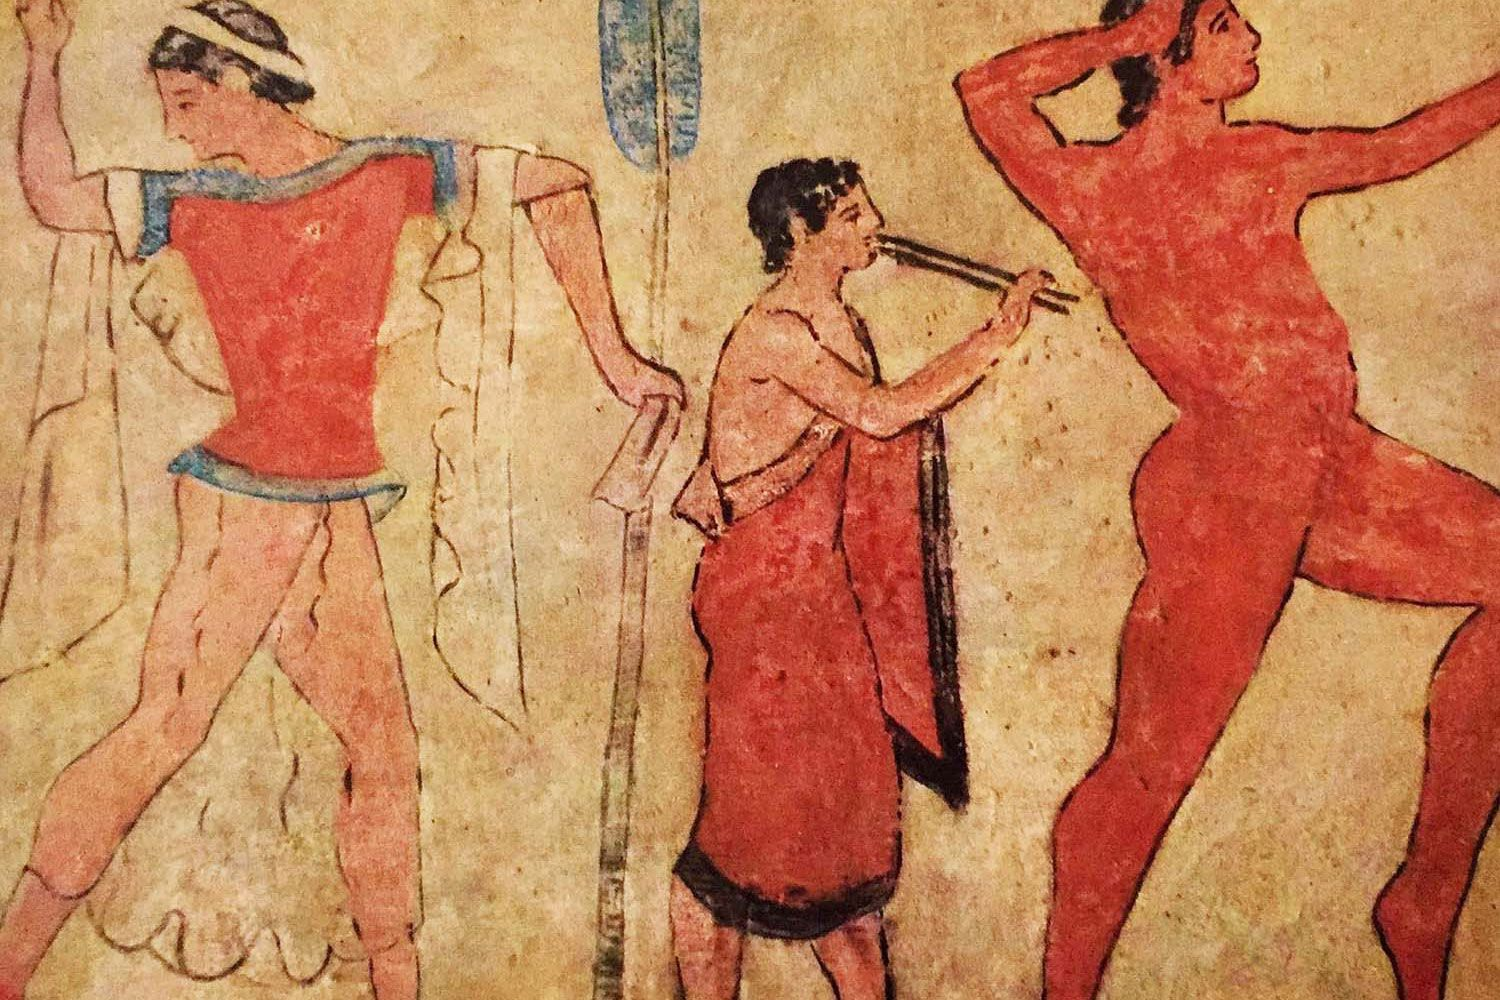 Dancers decorating part of the Tomba dell Colle from the early 6th century BC just outside of Chiusi.